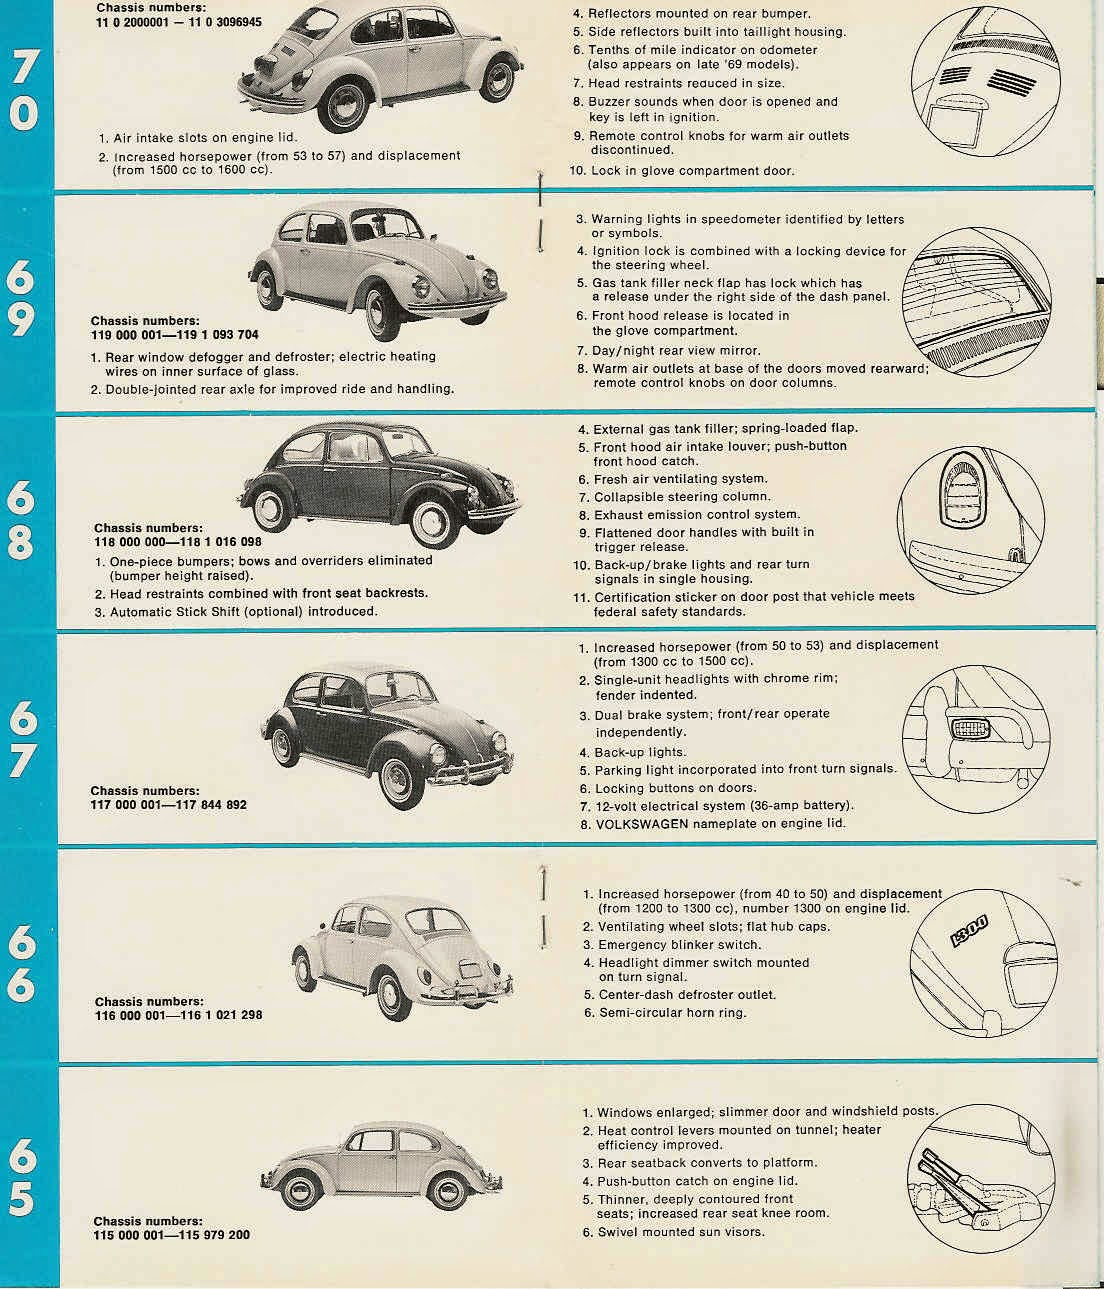 Volkswagen What Year Is Your Beetle Stuurman Classic And Hooking Up The Vw Column Switch For Signal Lights Headlight Dimmer 1985 1 Aug 84 To 31 July 85 Chassis 11f000001 11f020000 Engine D 1523897 34bhpdin1200